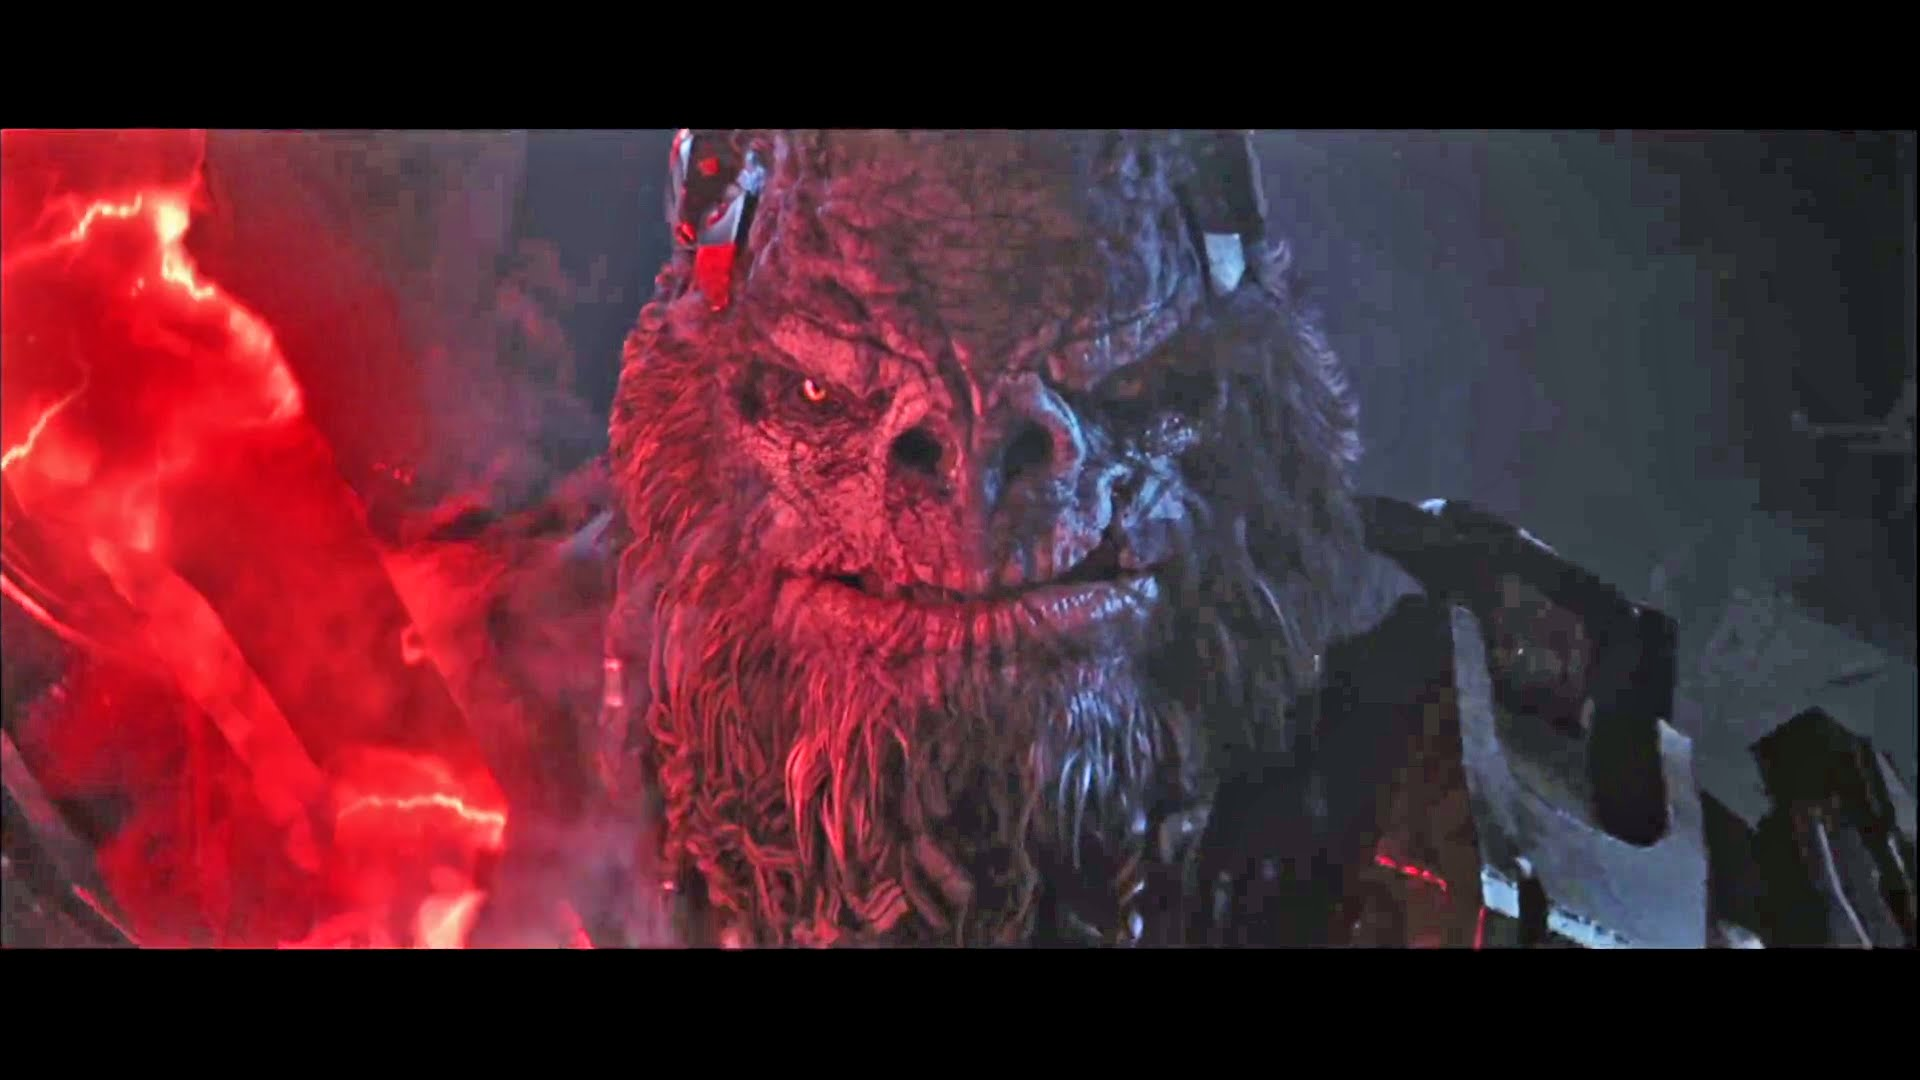 E3 2016: Halo Wars 2 Will Be Playable At The Event